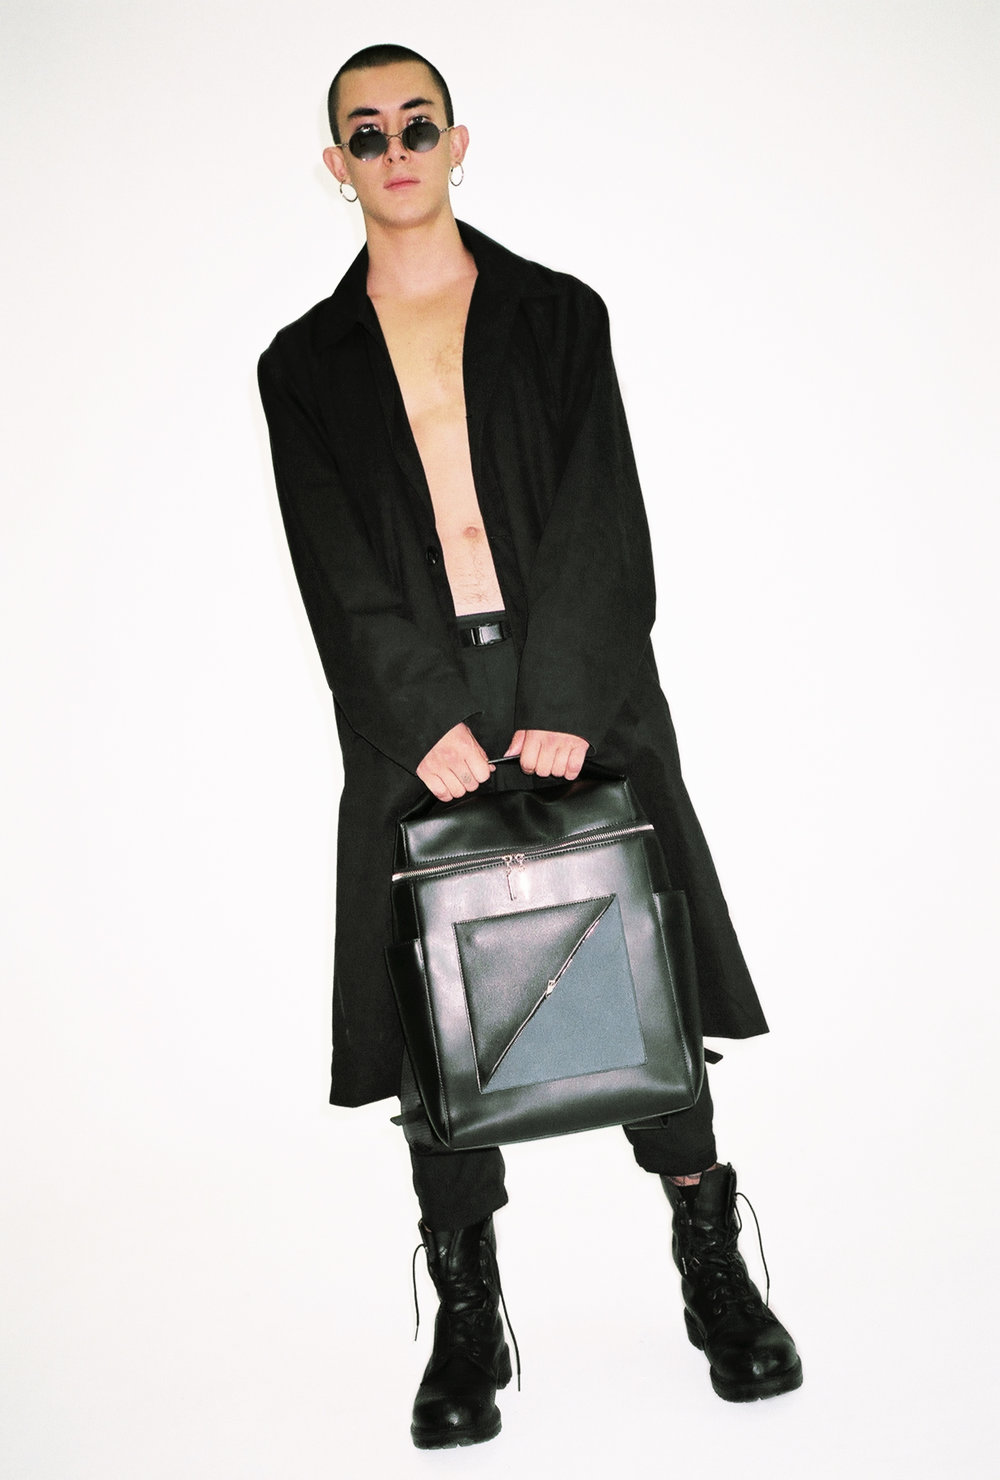 BACKPACK01 with DIAGONAL ZIPPER Clutch.jpg